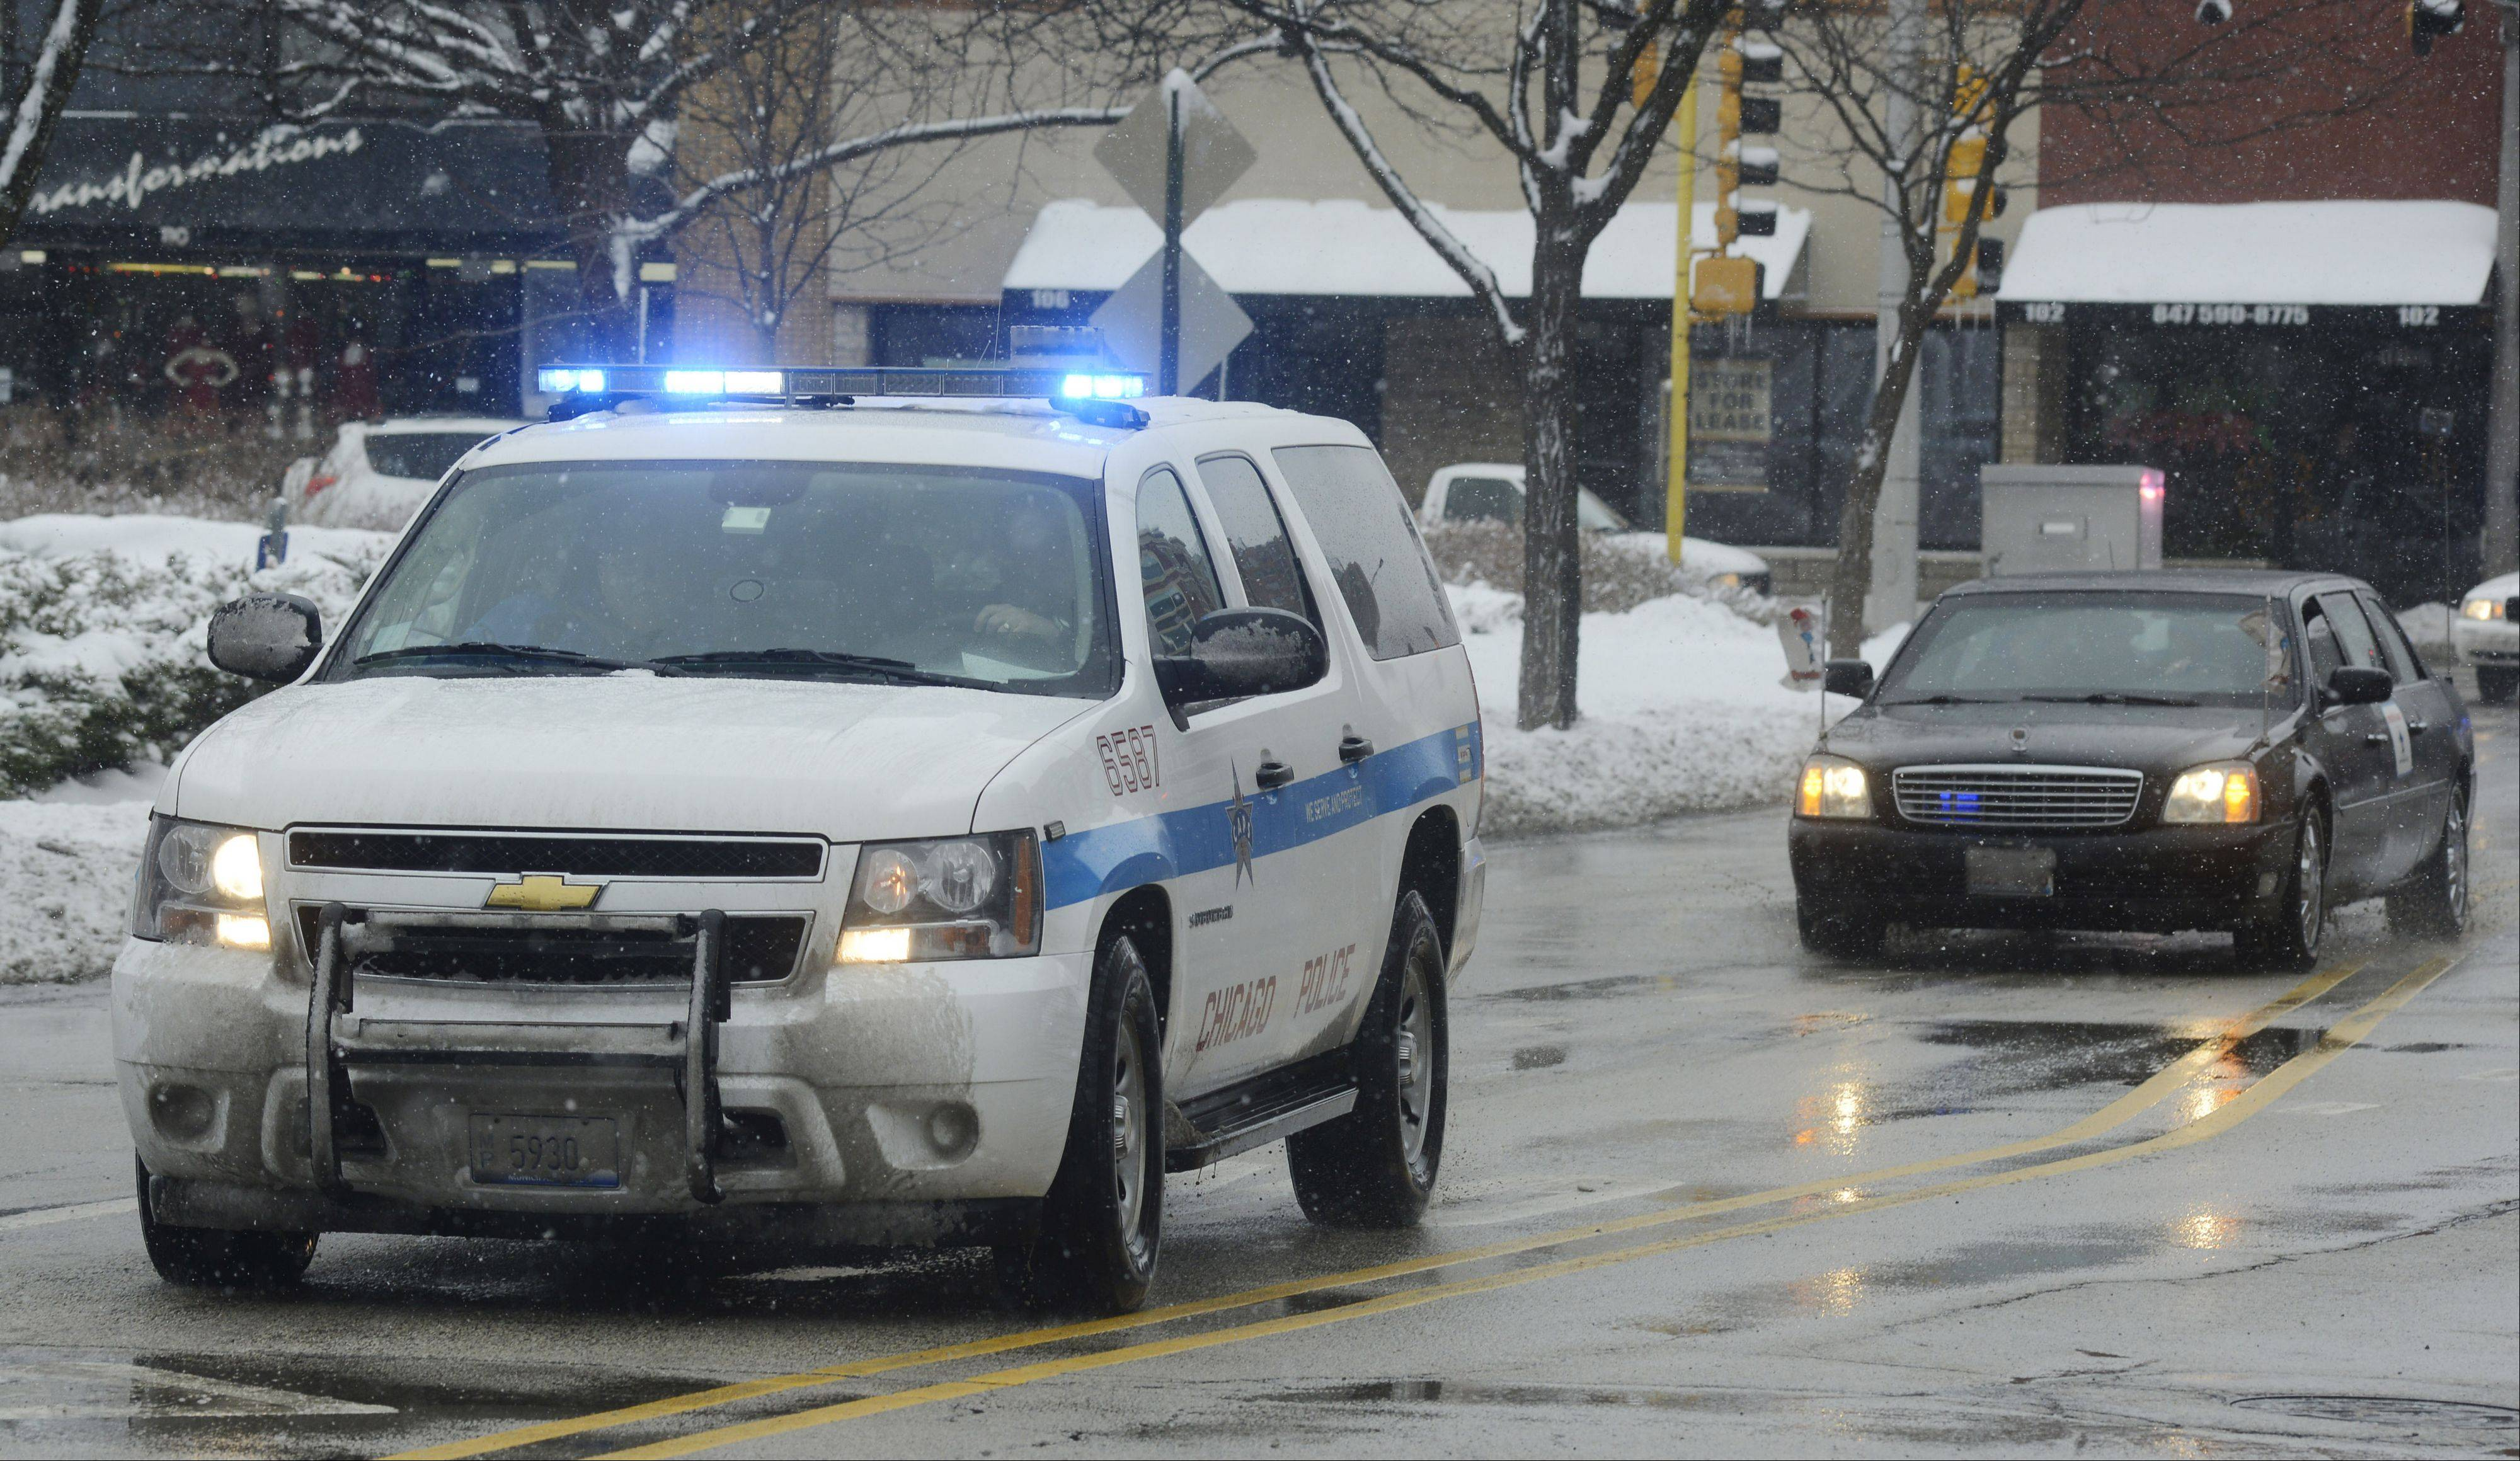 Vehicles from the Chicago Police Memorial Foundation's Operation Santa arrive at the Arlington Heights Police Department on Saturday to drop off gifts for Officer Michael McEvoy, who was shot in the line of duty on Thursday.